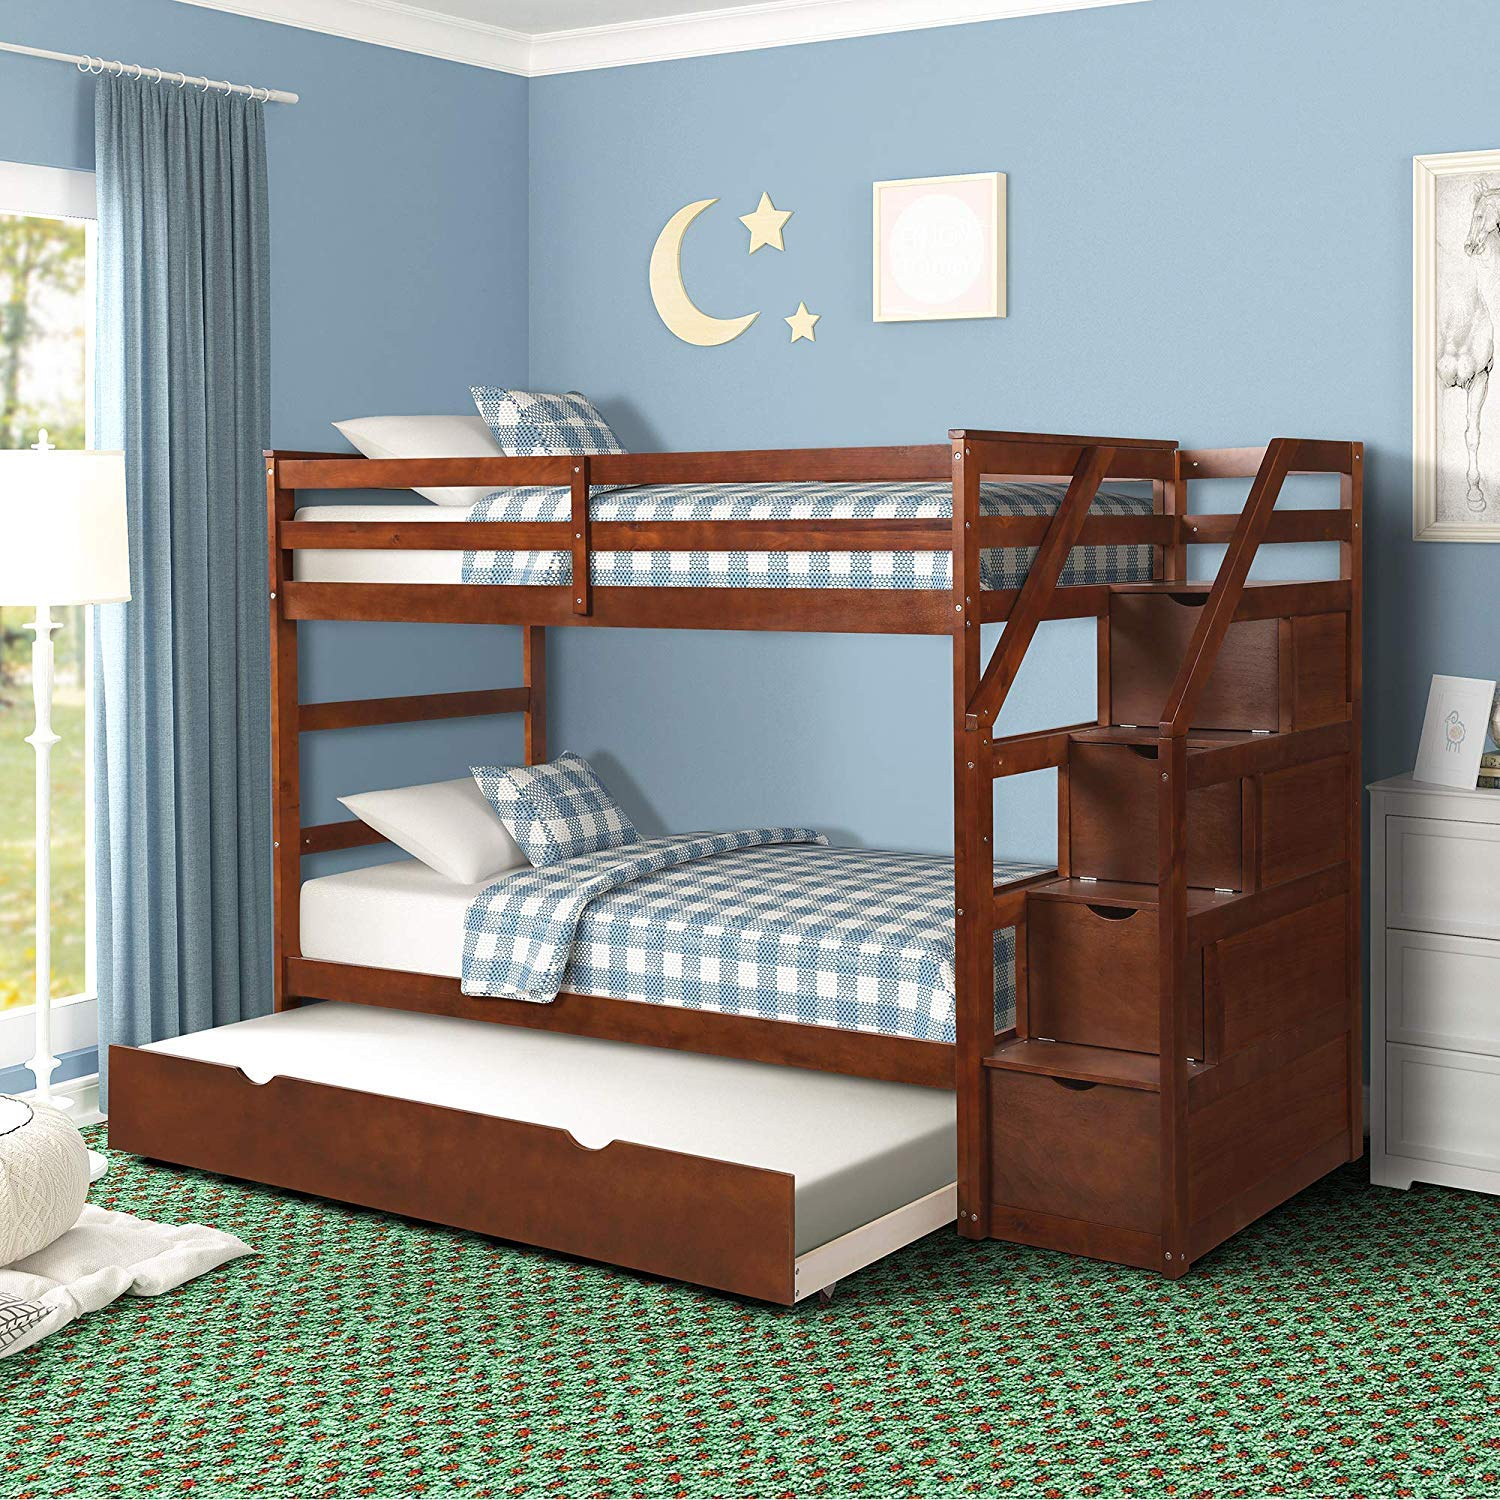 MIERES Kids 3 Twin Bunk Storage and Trundle Bed Walnut